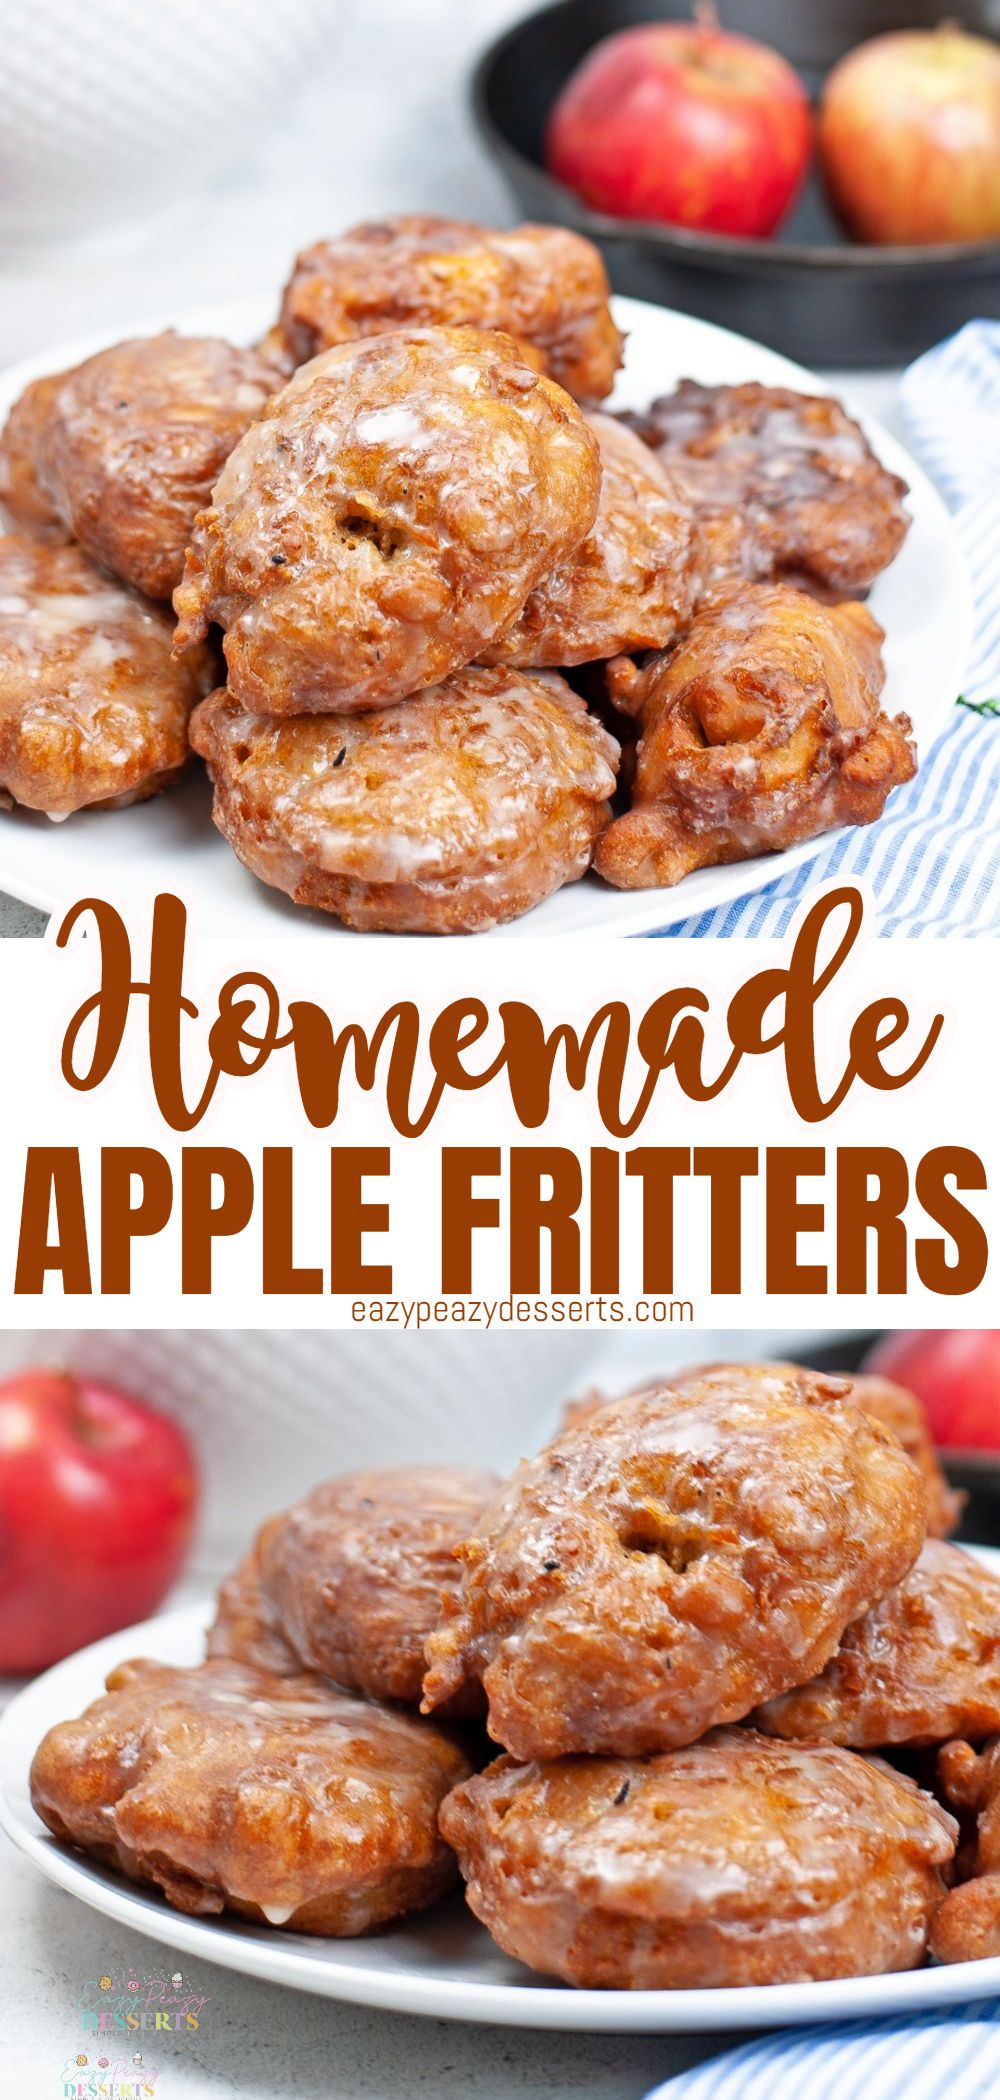 Deep fried dough filled with fresh apples and coated with a vanilla glaze, these easy homemade apple fritters are a delicious treat for breakfast or dessert! via @eazypeazydesserts